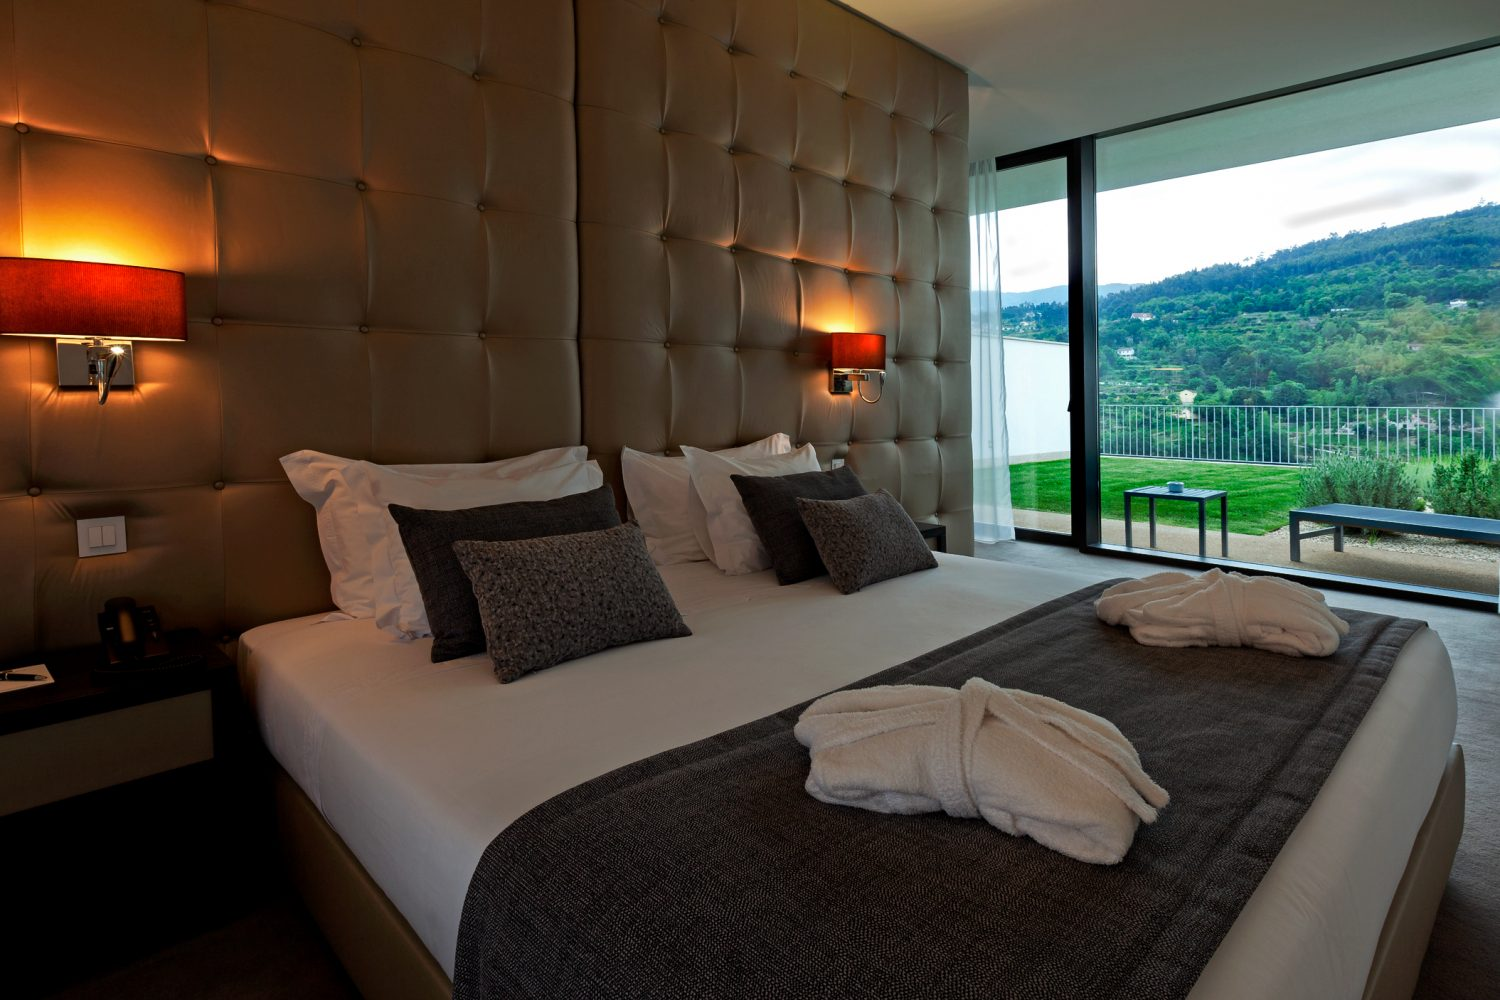 Suite at the Douro Royal Valley Hotel and Spa